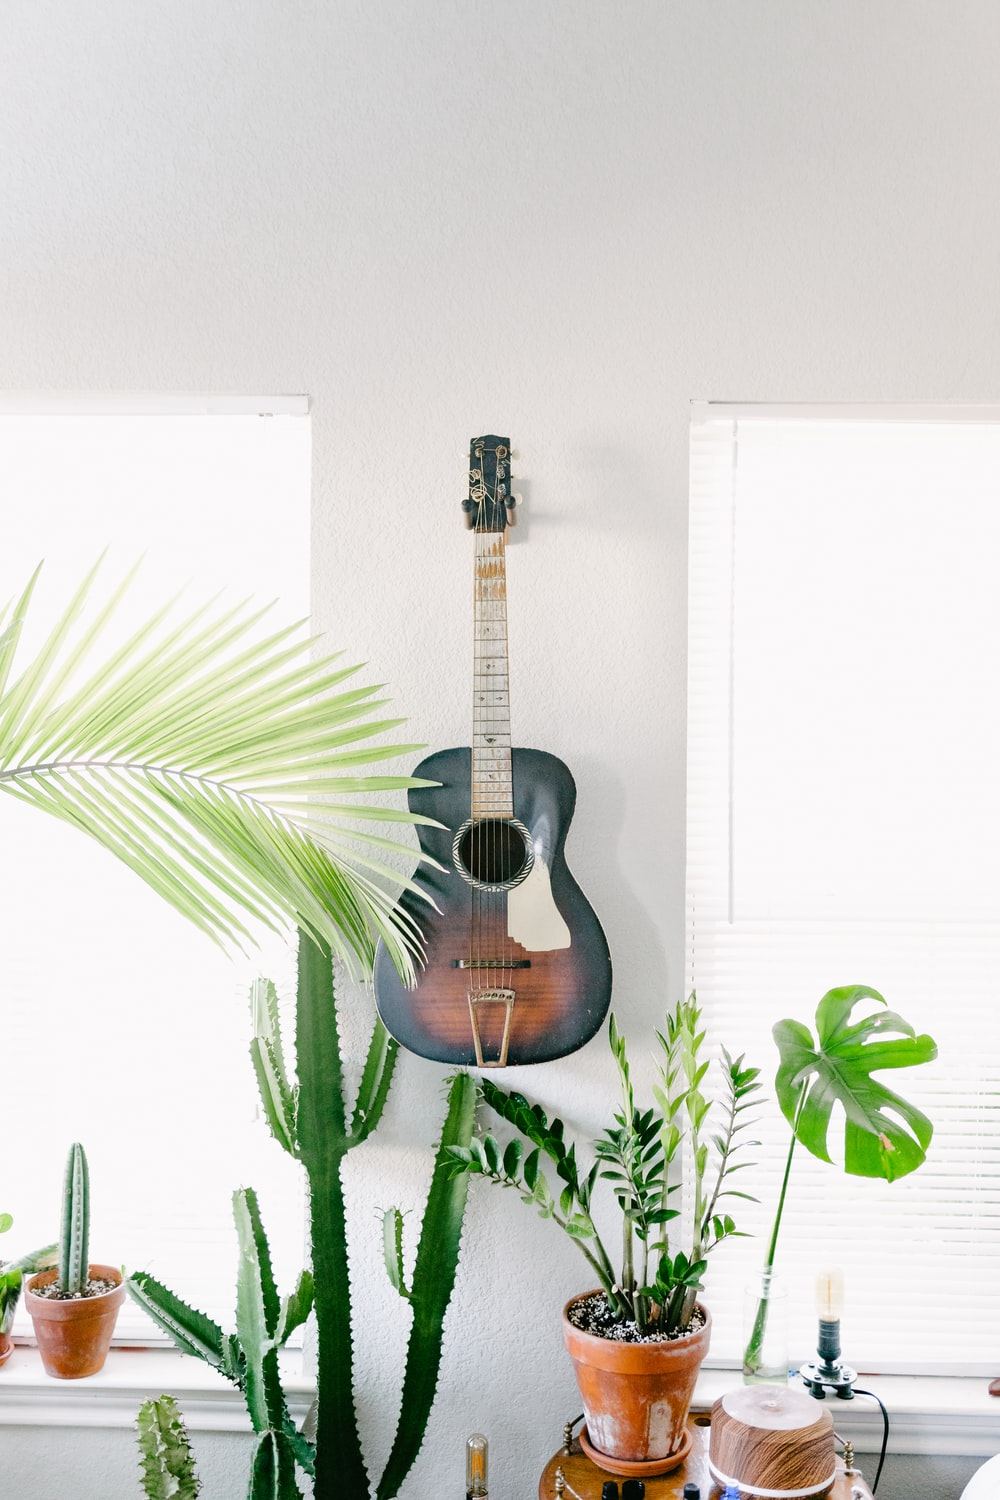 black and brown acoustic guitar hanging on wall